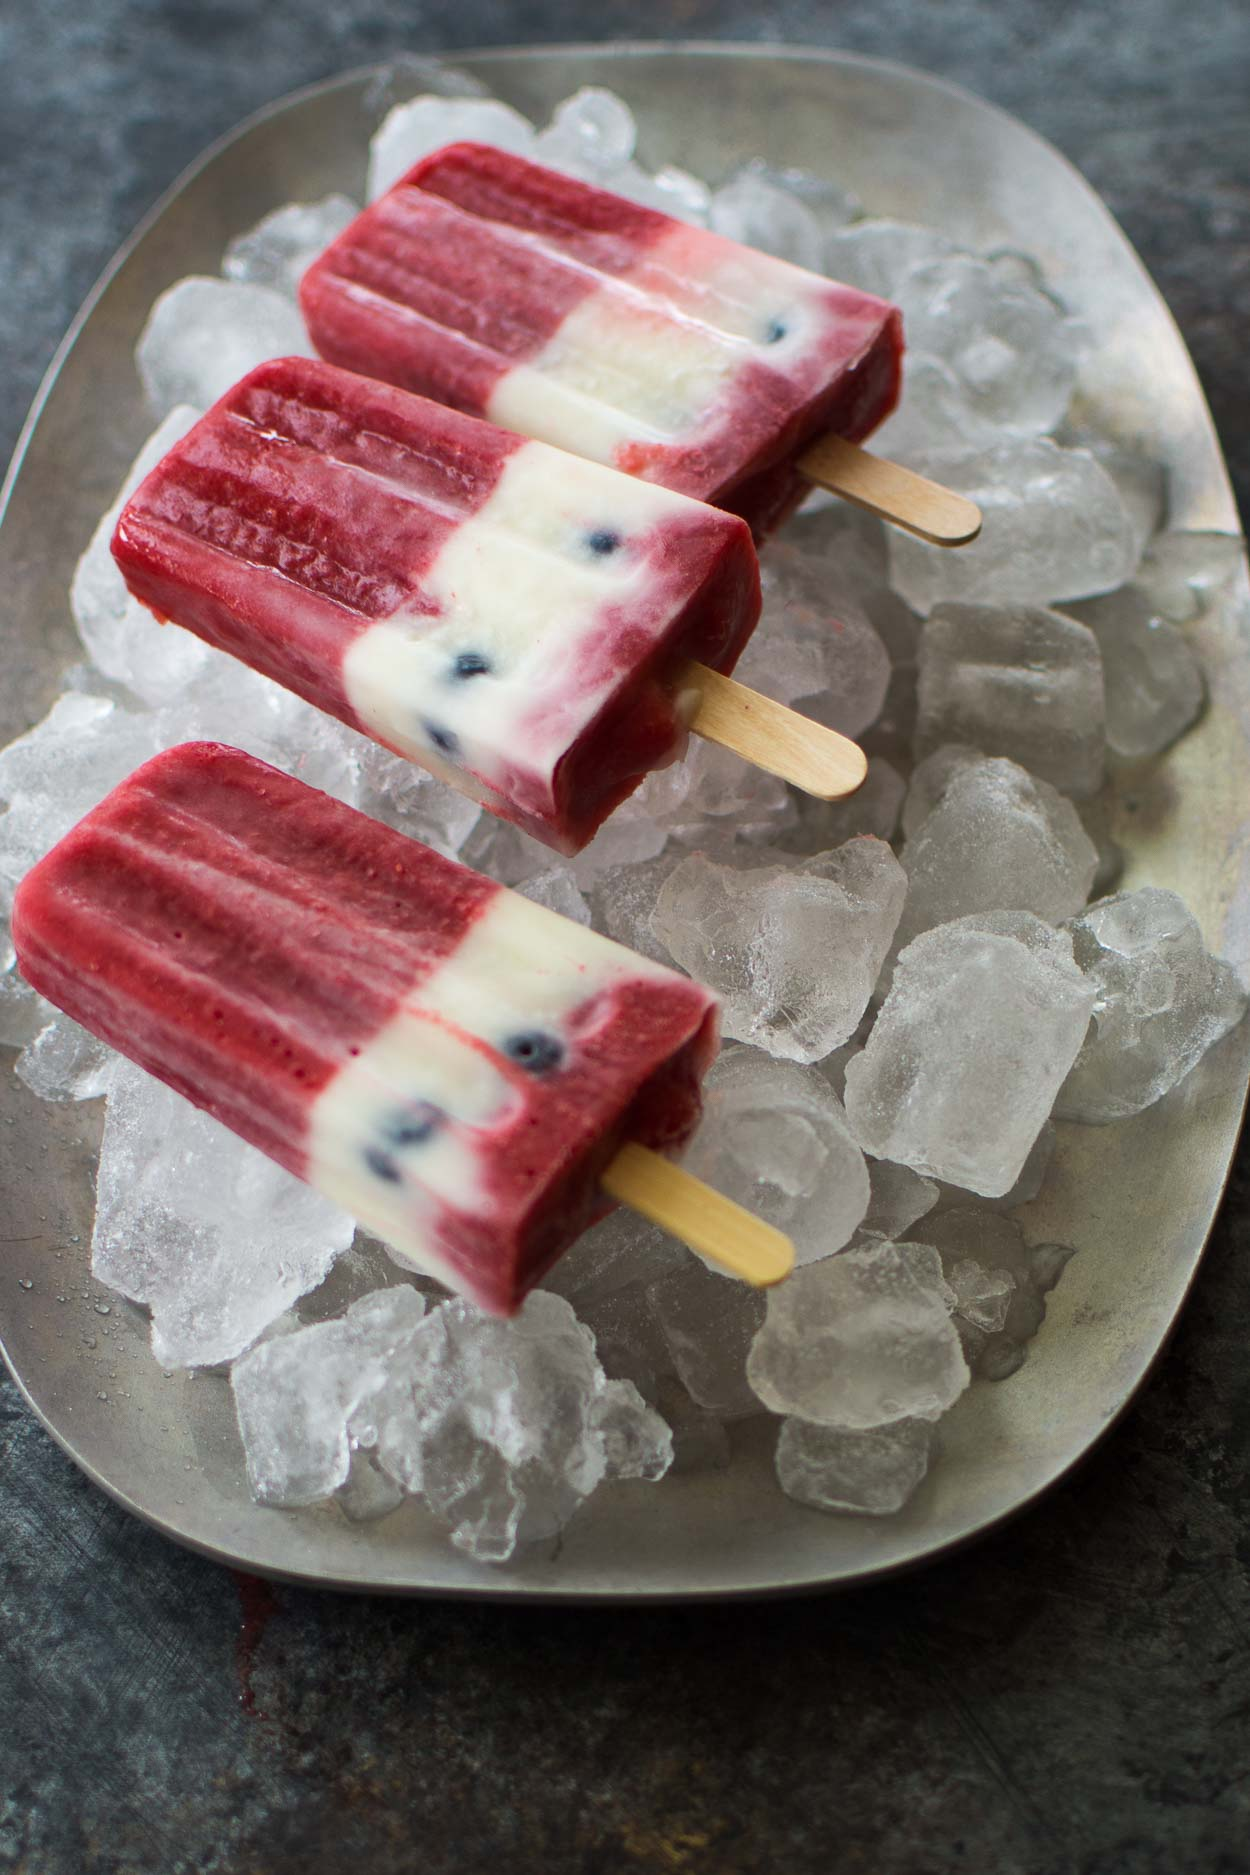 Strawberry, Blueberry and Kefir Popsicles for July 4th (They're Red, White and Blue!)